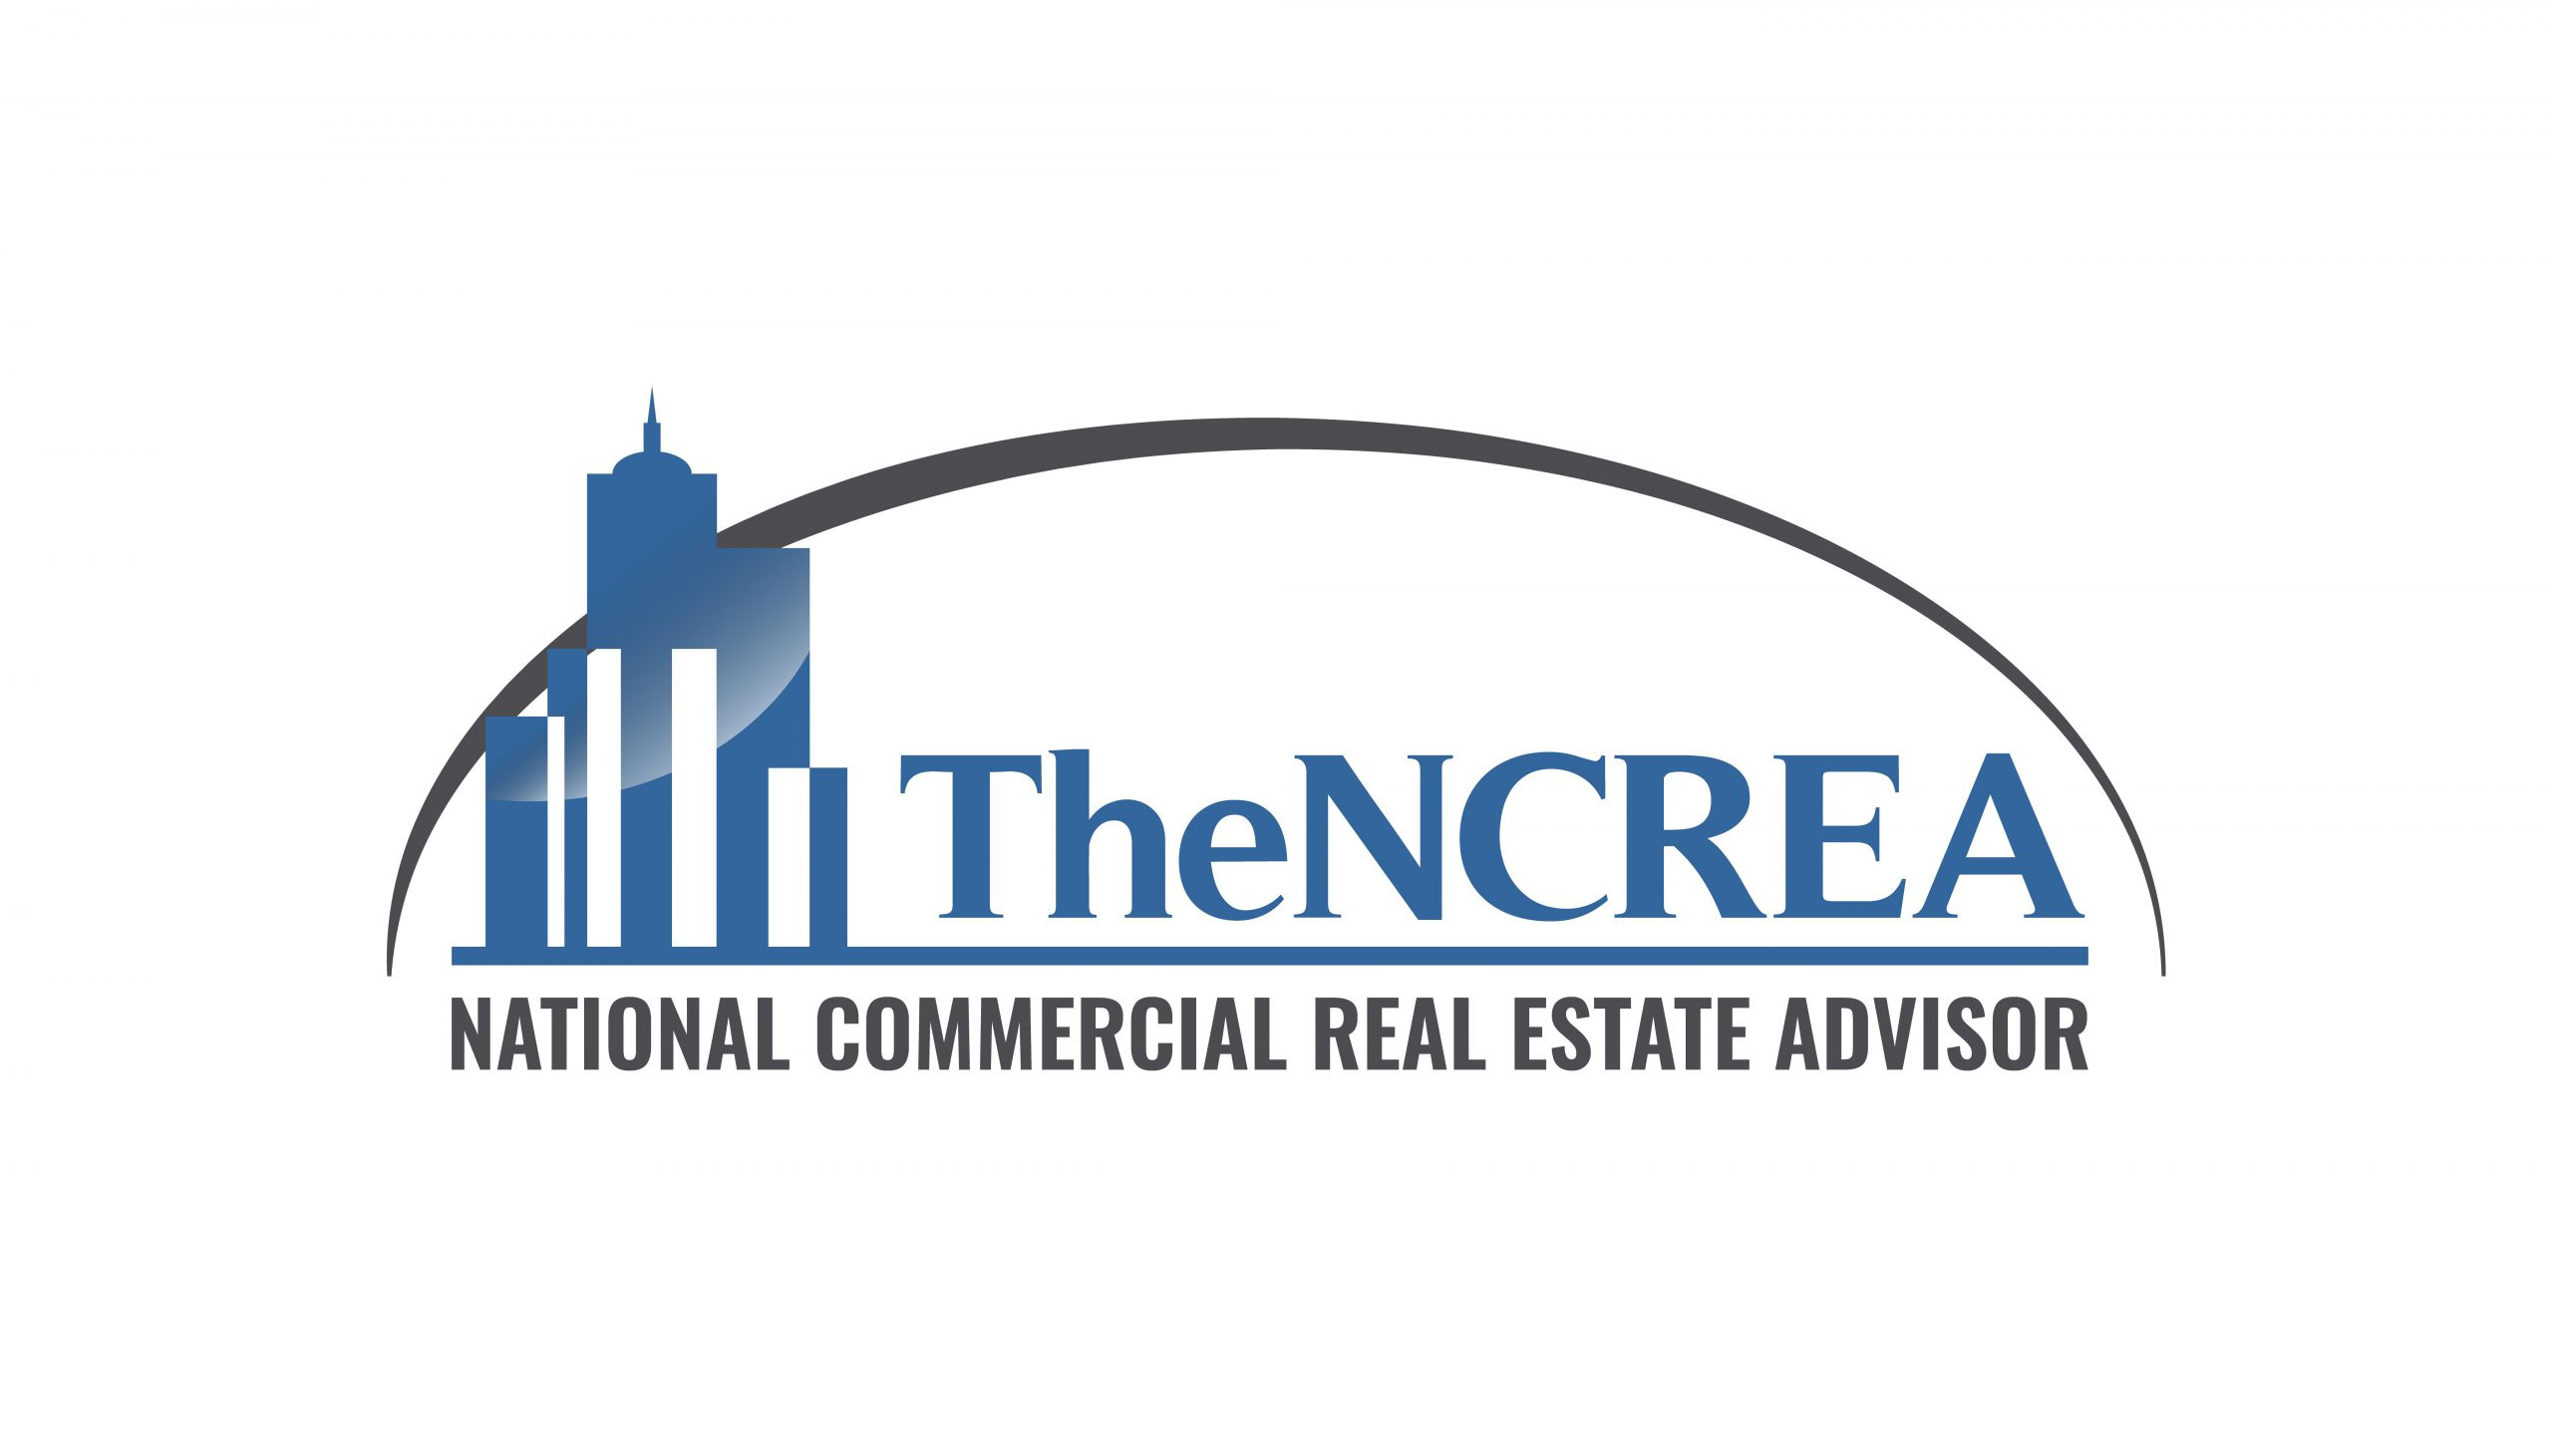 National Commercial Real Estate Advisor